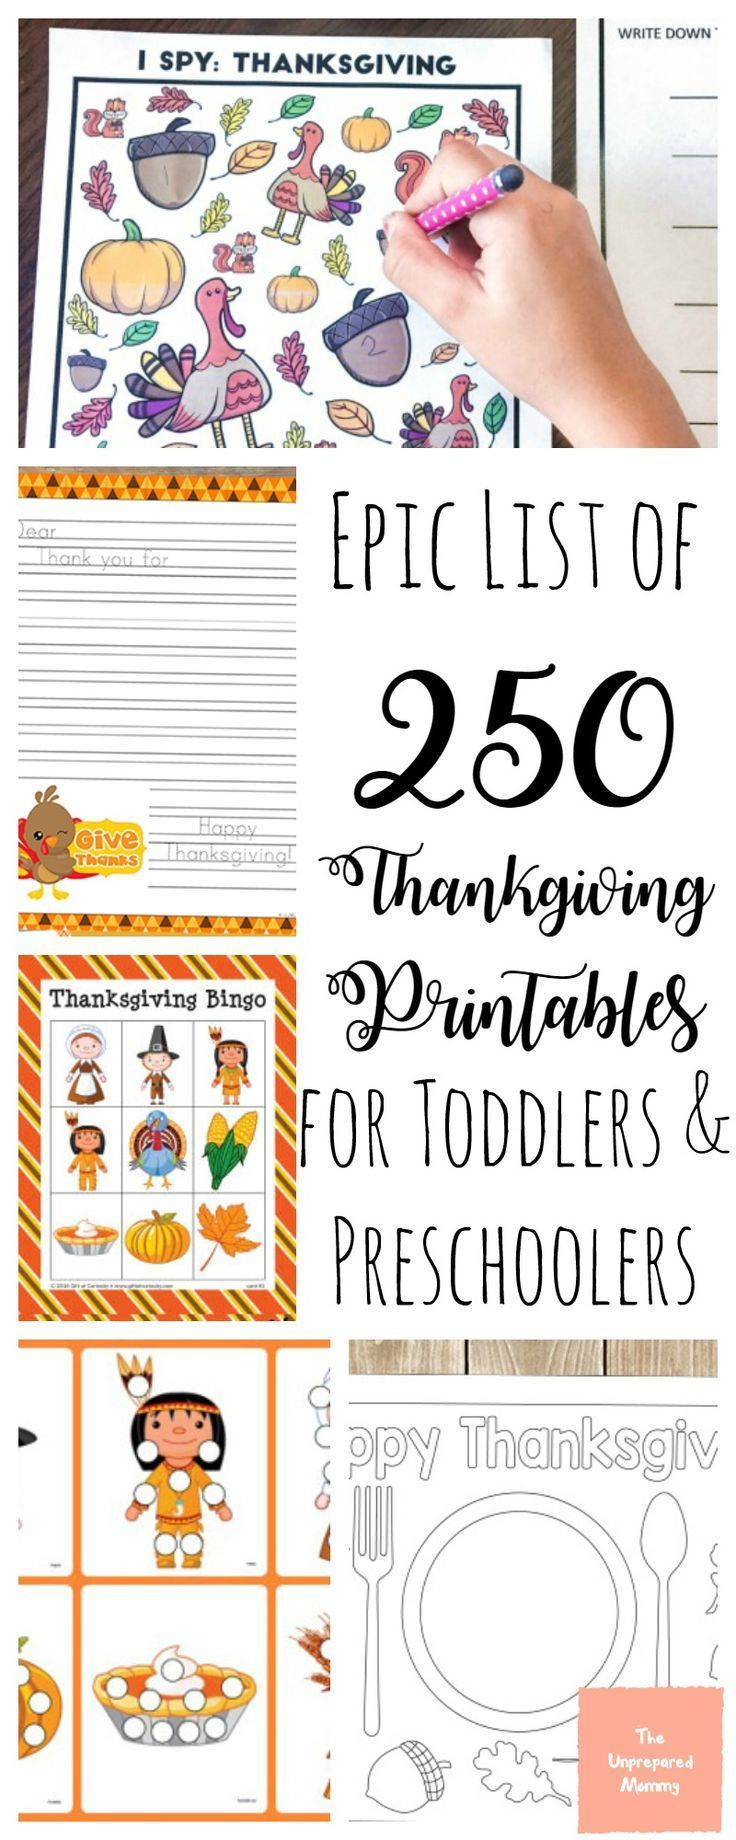 Predownload: 250 Free Thanksgiving Printables For Toddlers And Preschoolers Free Thanksgiving Printables Thanksgiving Activities For Kids Thanksgiving Games For Kids [ 1840 x 736 Pixel ]